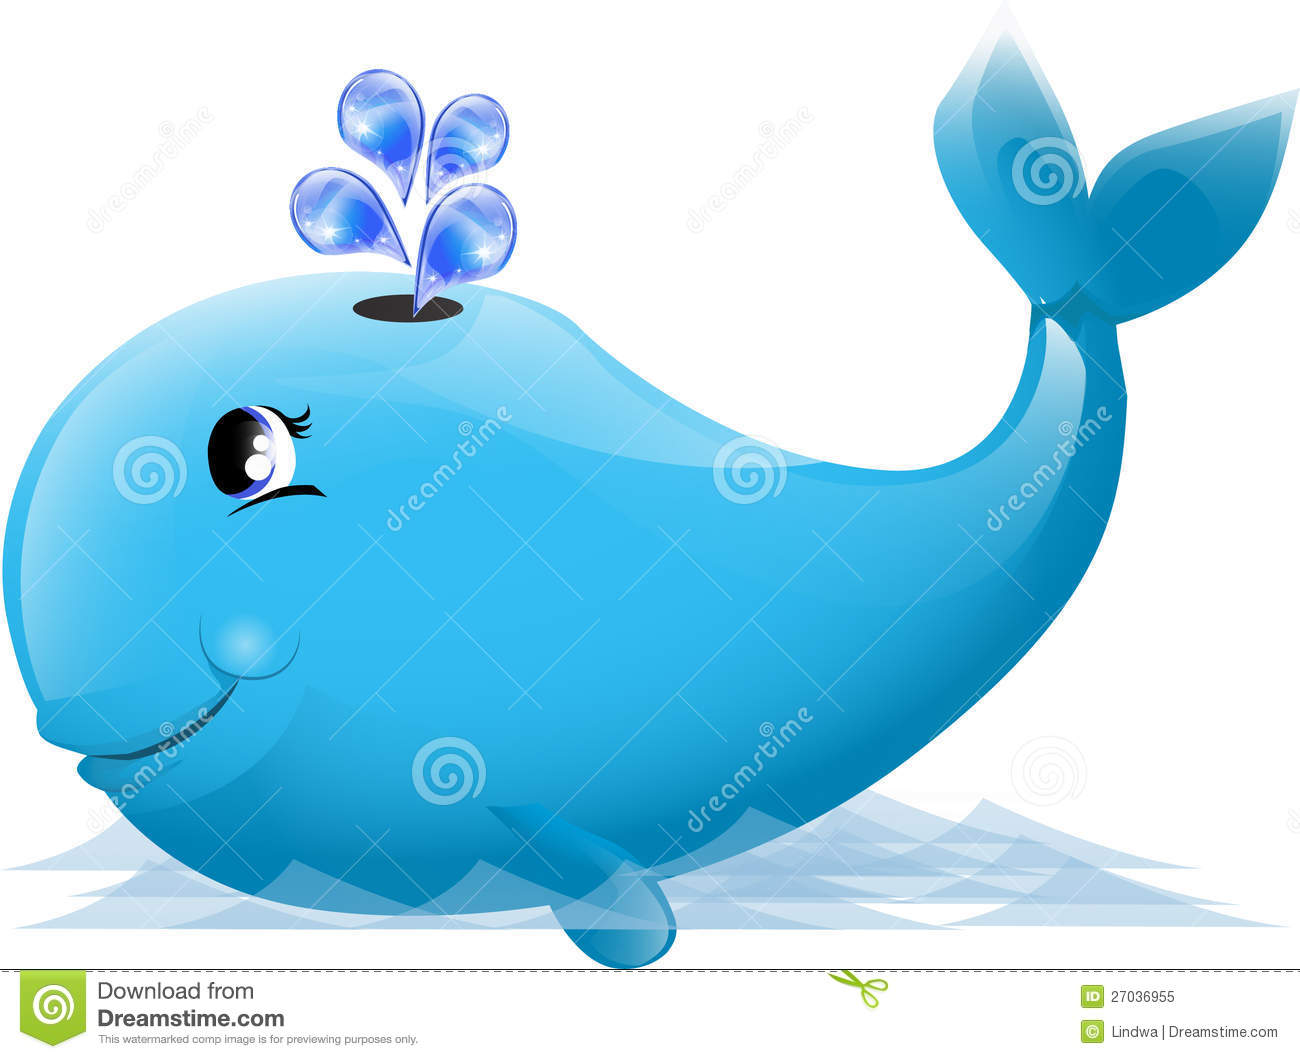 Cute whale in water cartoon isolated illustration stock photography - Royalty Free Stock Photo Background Cute Vector Whale Flipper Water